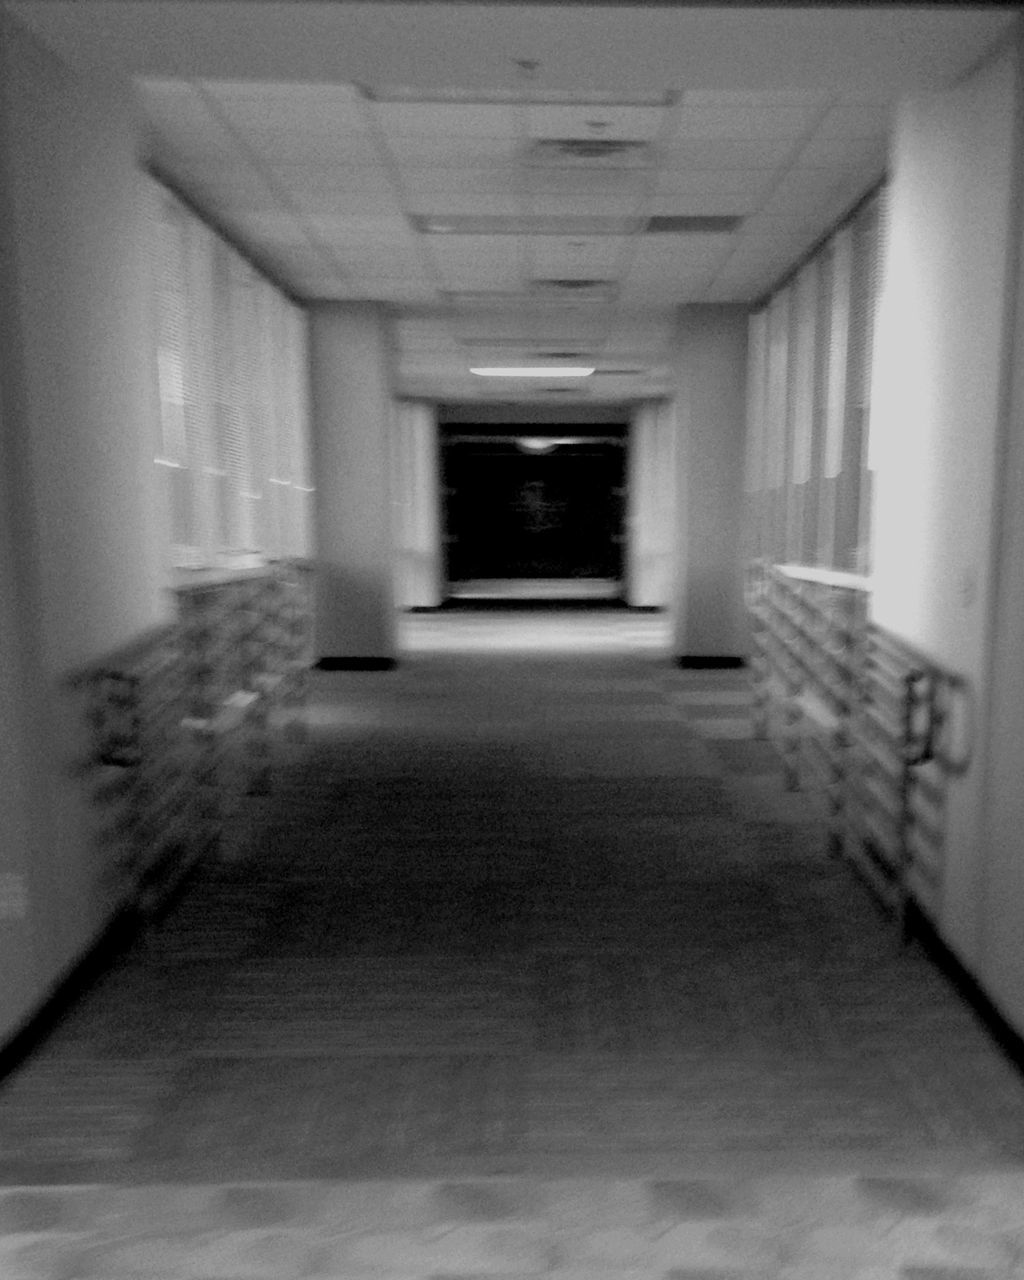 indoors, corridor, the way forward, architecture, empty, built structure, no people, day, prison